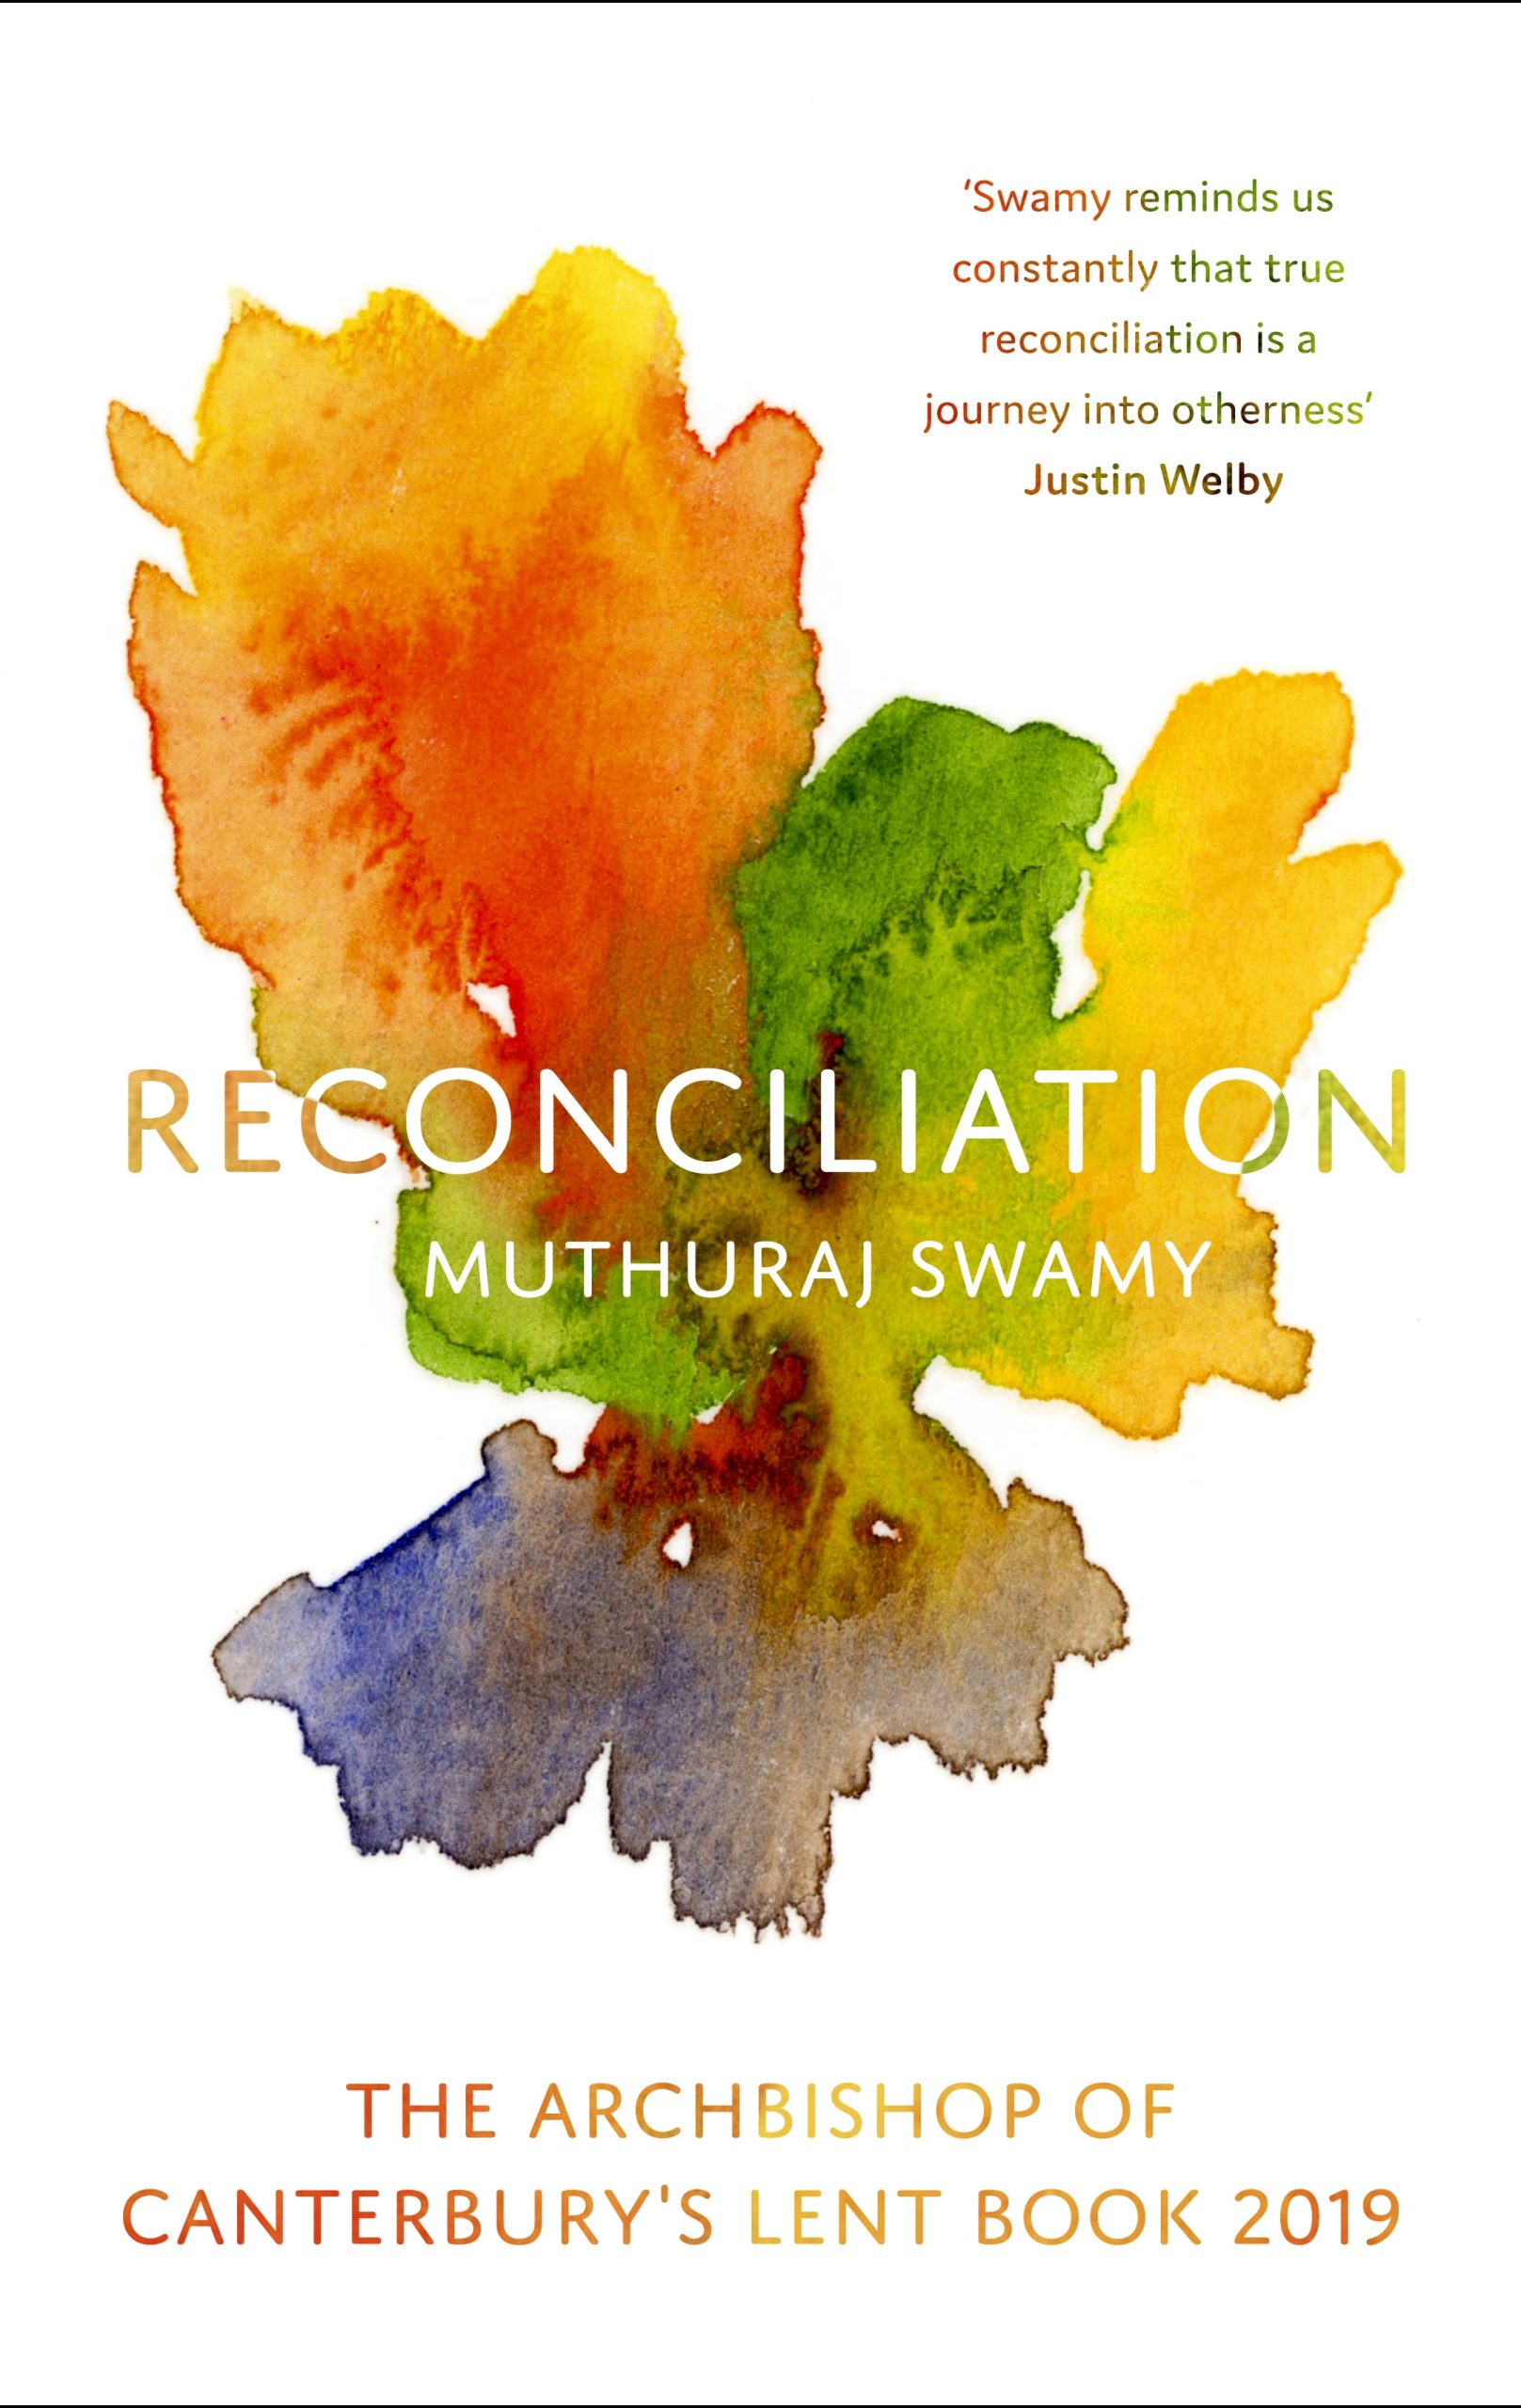 The Archbishop of Canterbury's Lent book 2019 – Reconciliation